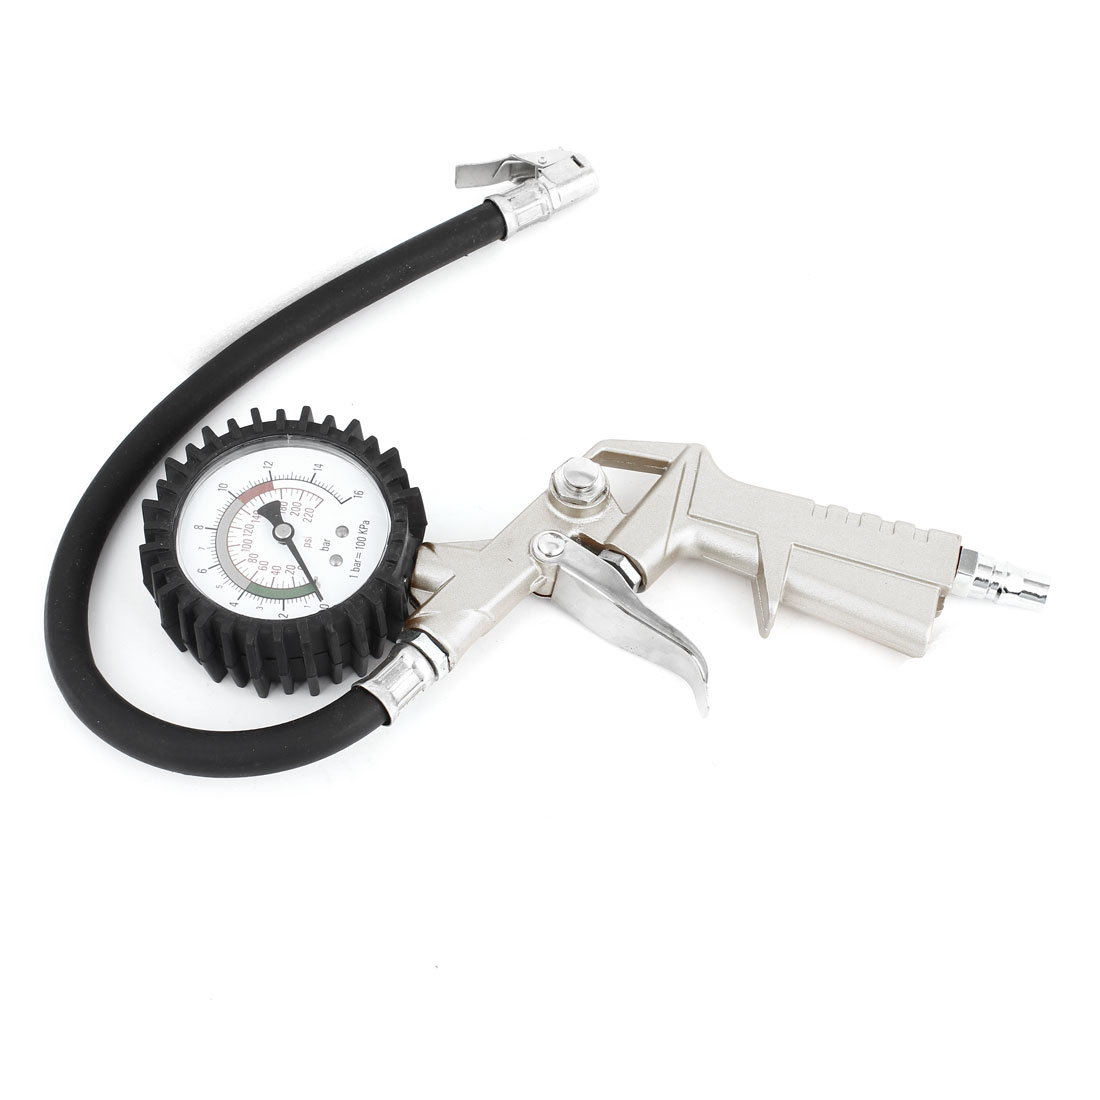 Gold Tone Auto Motorcycle Tire Inflator Gun w Pressure Gauge 0-16 Bar 0-220 Psi